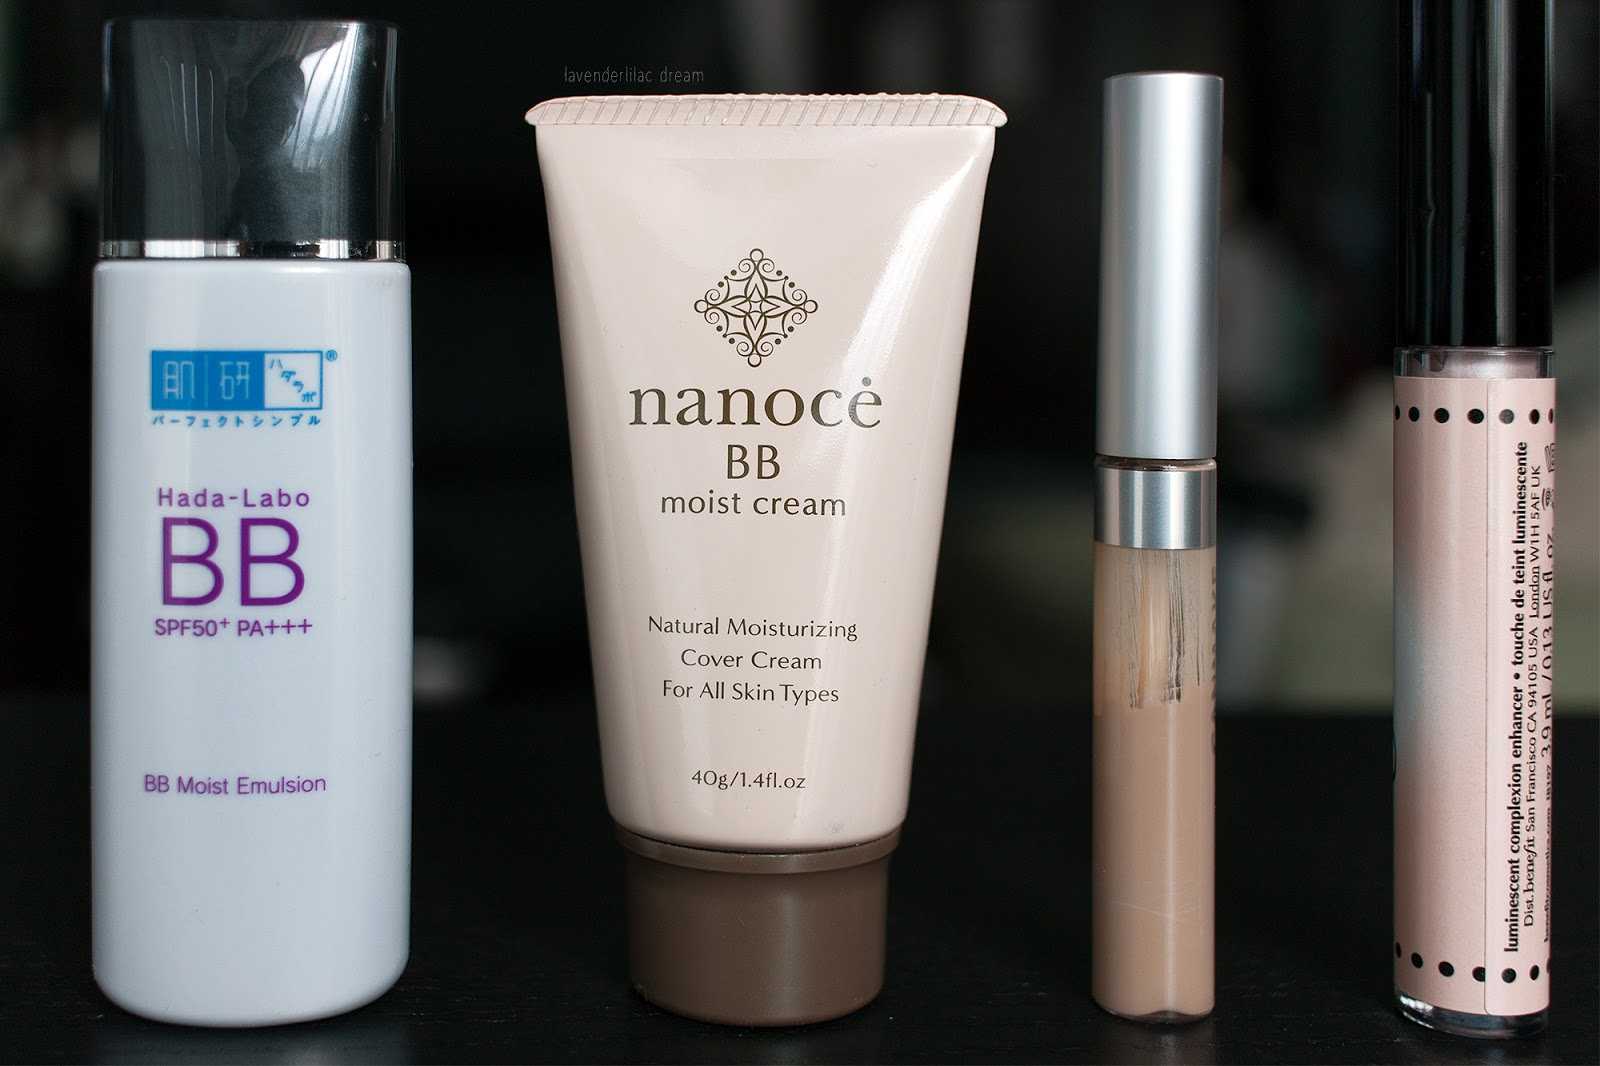 Hada Labo BB Moist Emulsion, Nanoce BB Cream, Canmake Cover & Stretch Concealer UV, Benefit Highbeam Half way results highlighter